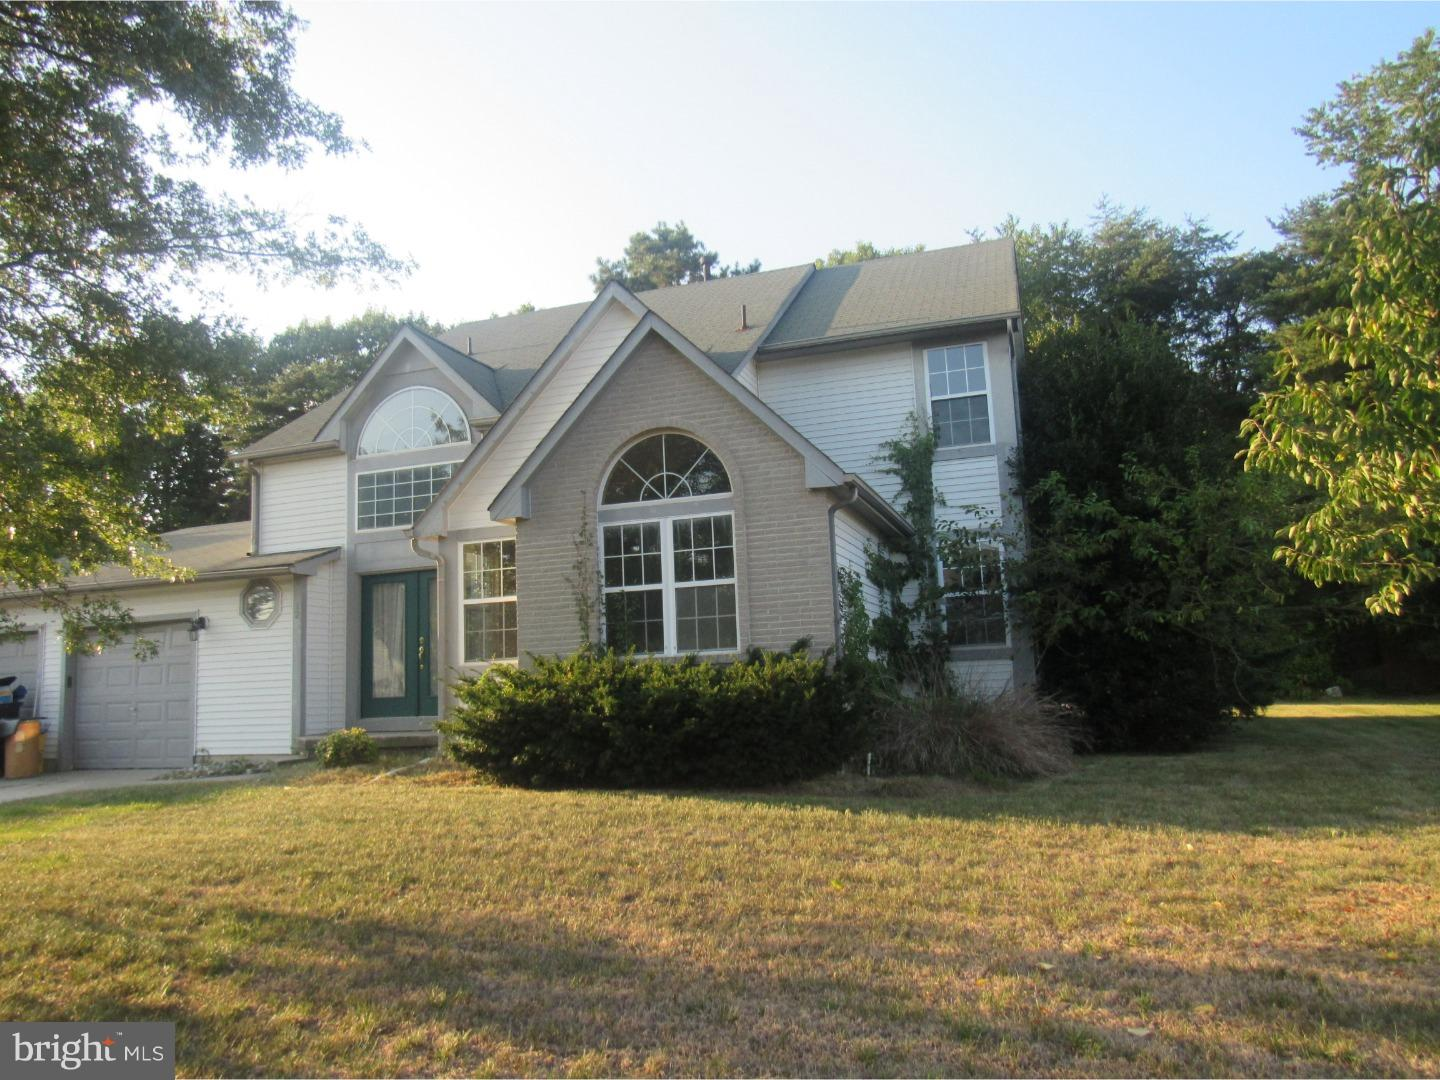 Single Family Home for Sale at 12 JASON Drive Berlin Boro, New Jersey 08009 United States